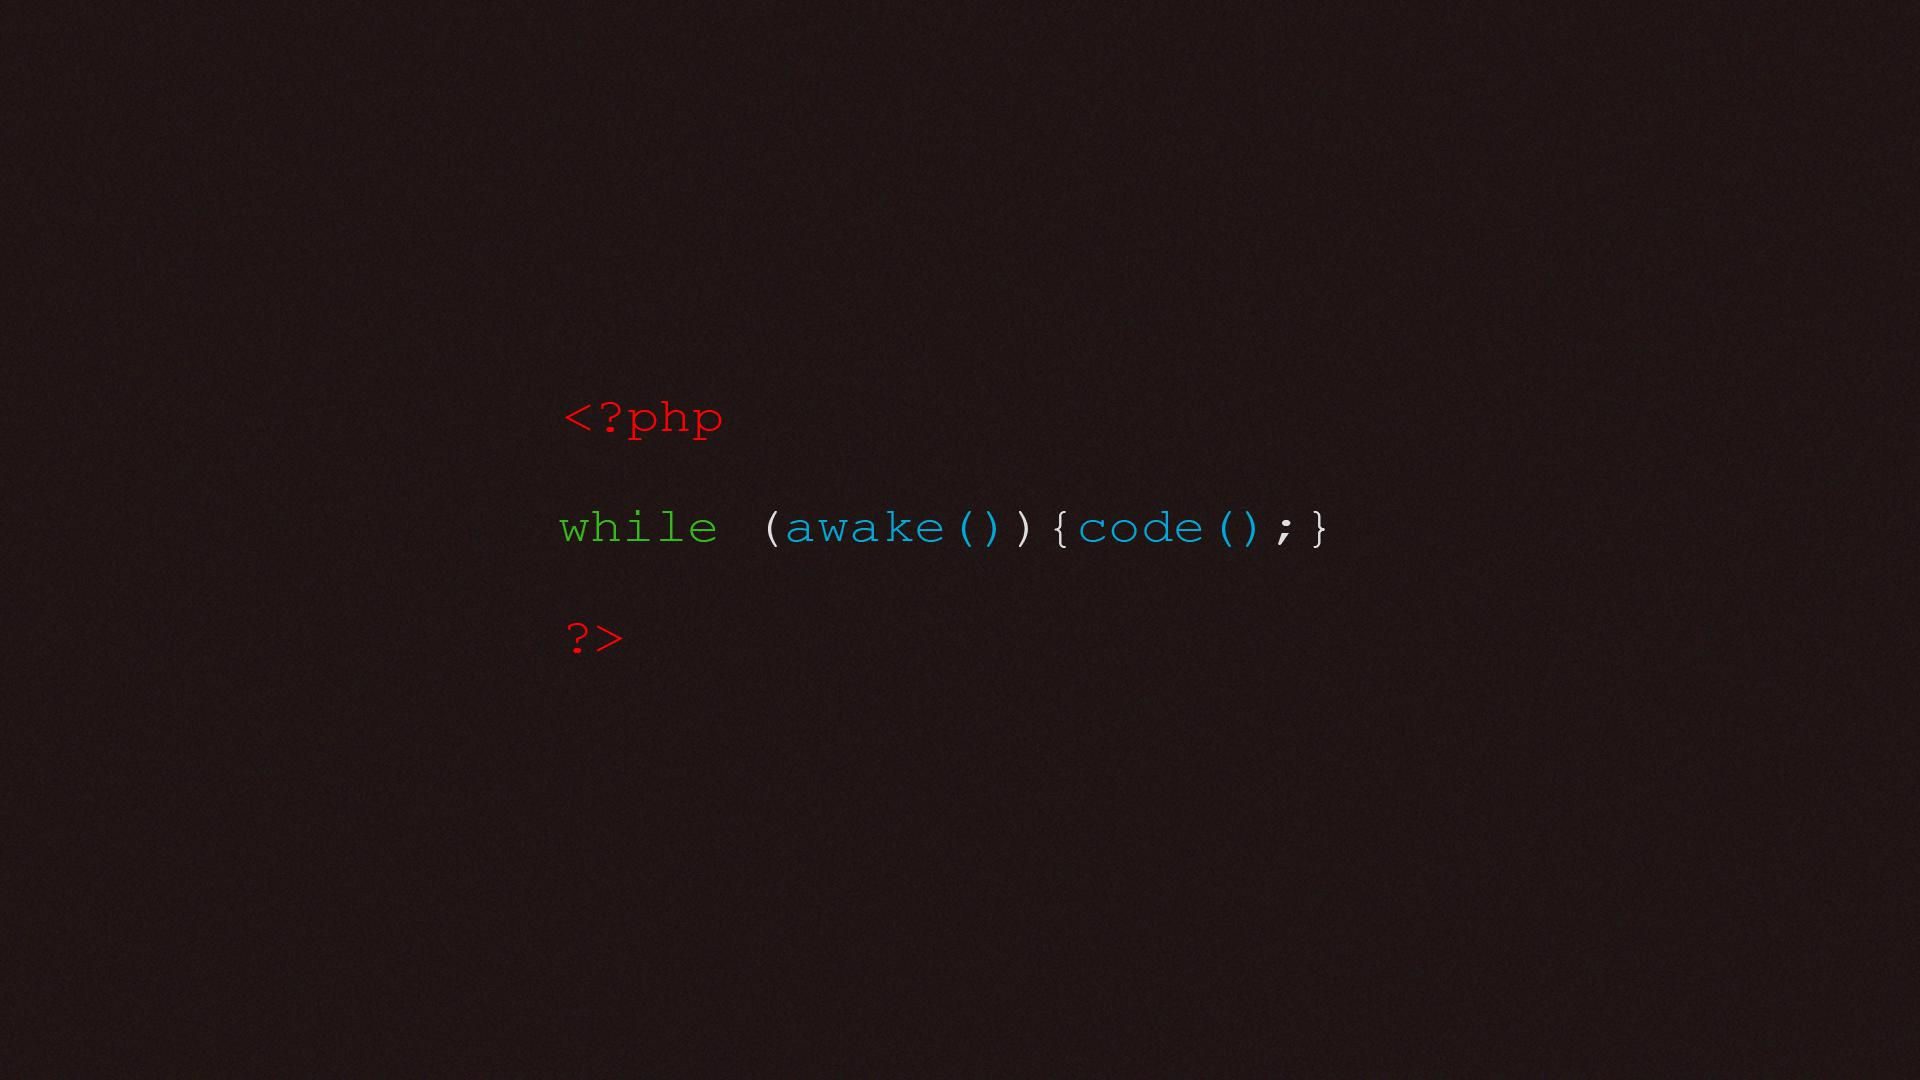 Programming Hd Wallpapers For Desktop Coding In